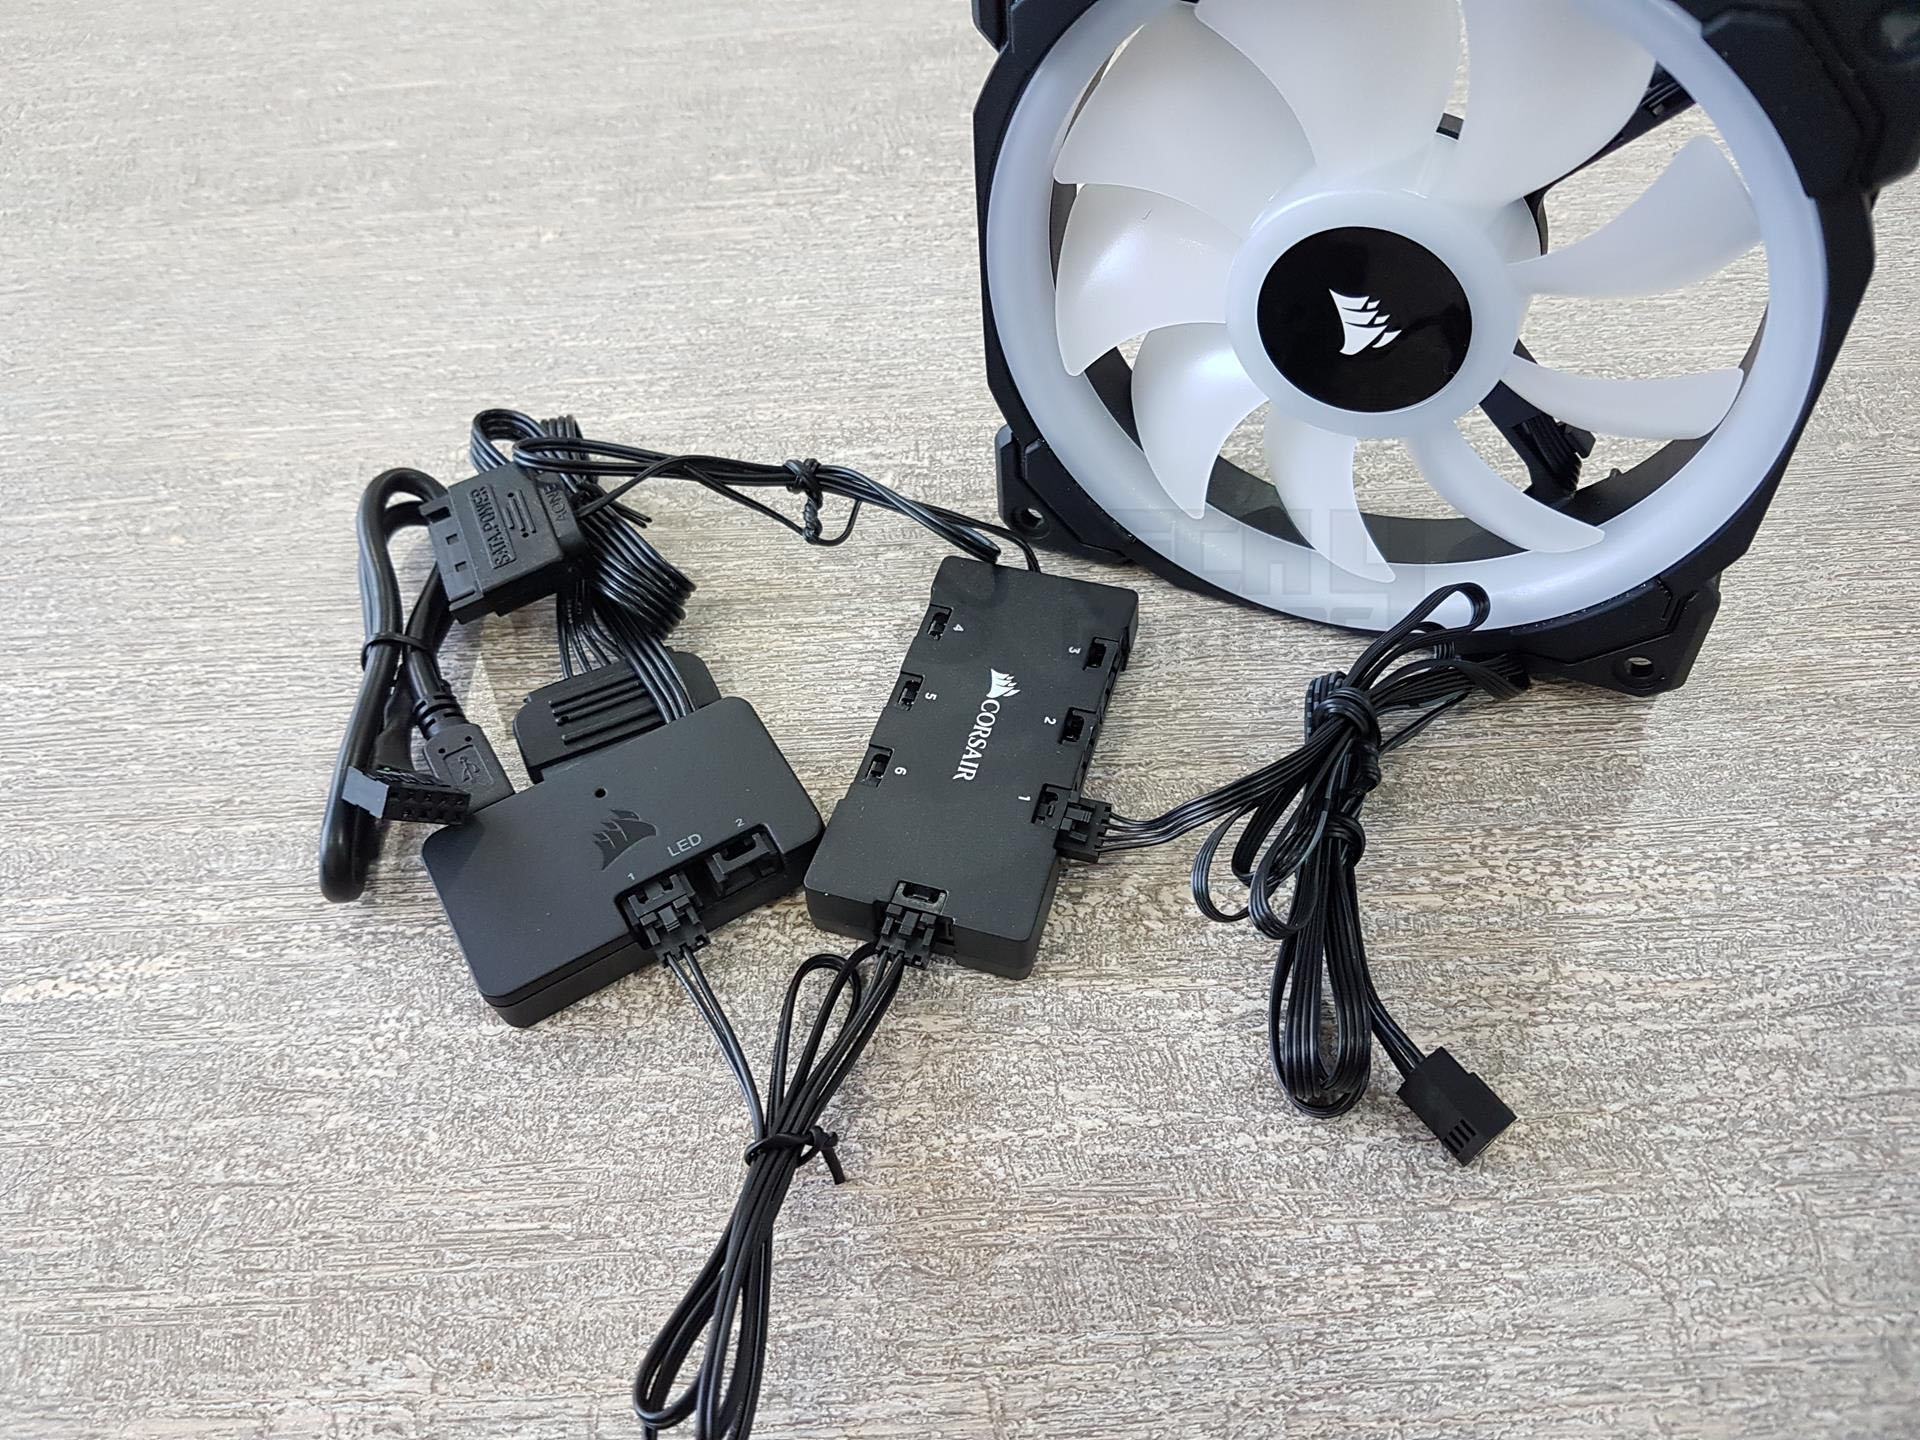 Corsair Ll120 Rgb Led 3x Fans Pack Review Power Setting Up The Device Is Easy And Straightforward Connect Ll Series To Hub Making Sure That Are Connected In An Order